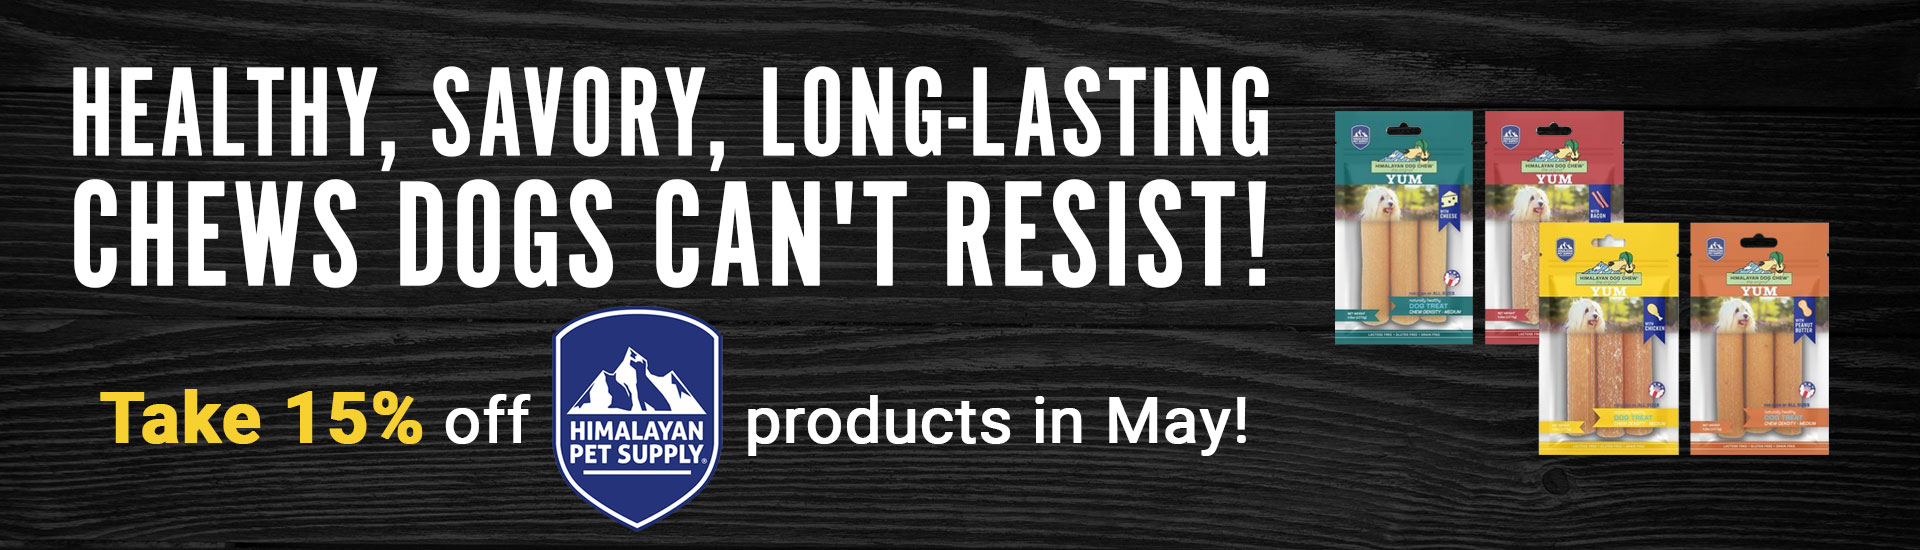 Healthy, savory, long-lasting chews dogs can't resist! Take 15% off [Himilayan Pet Supply logo] products in May!